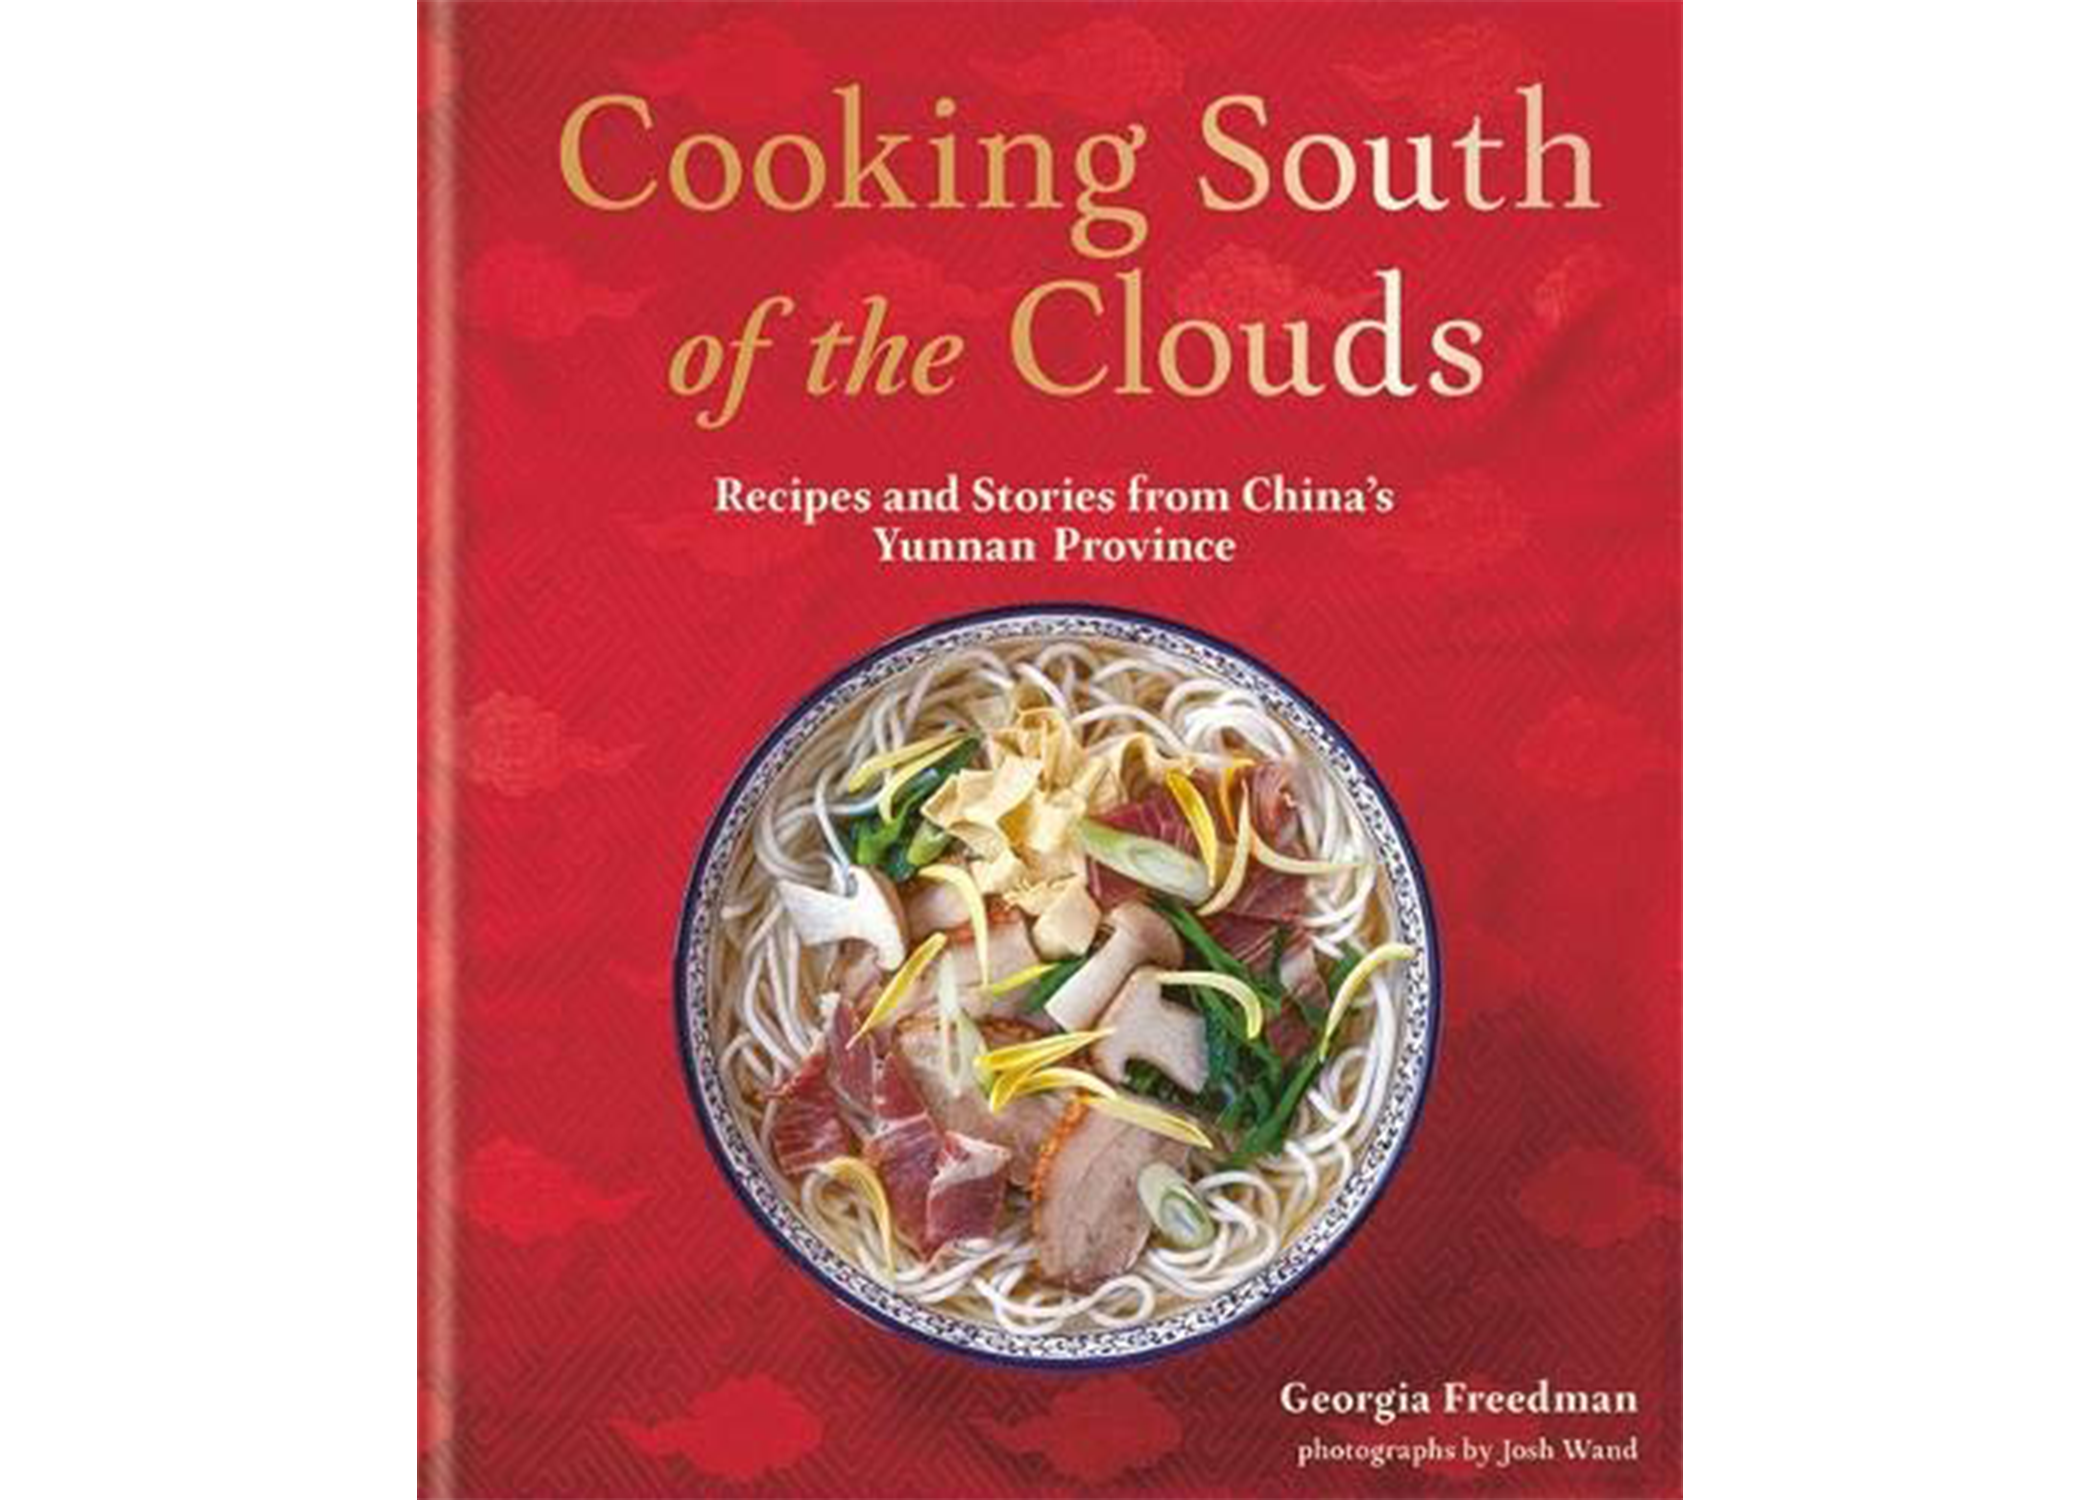 cooking south of the clouds.jpg